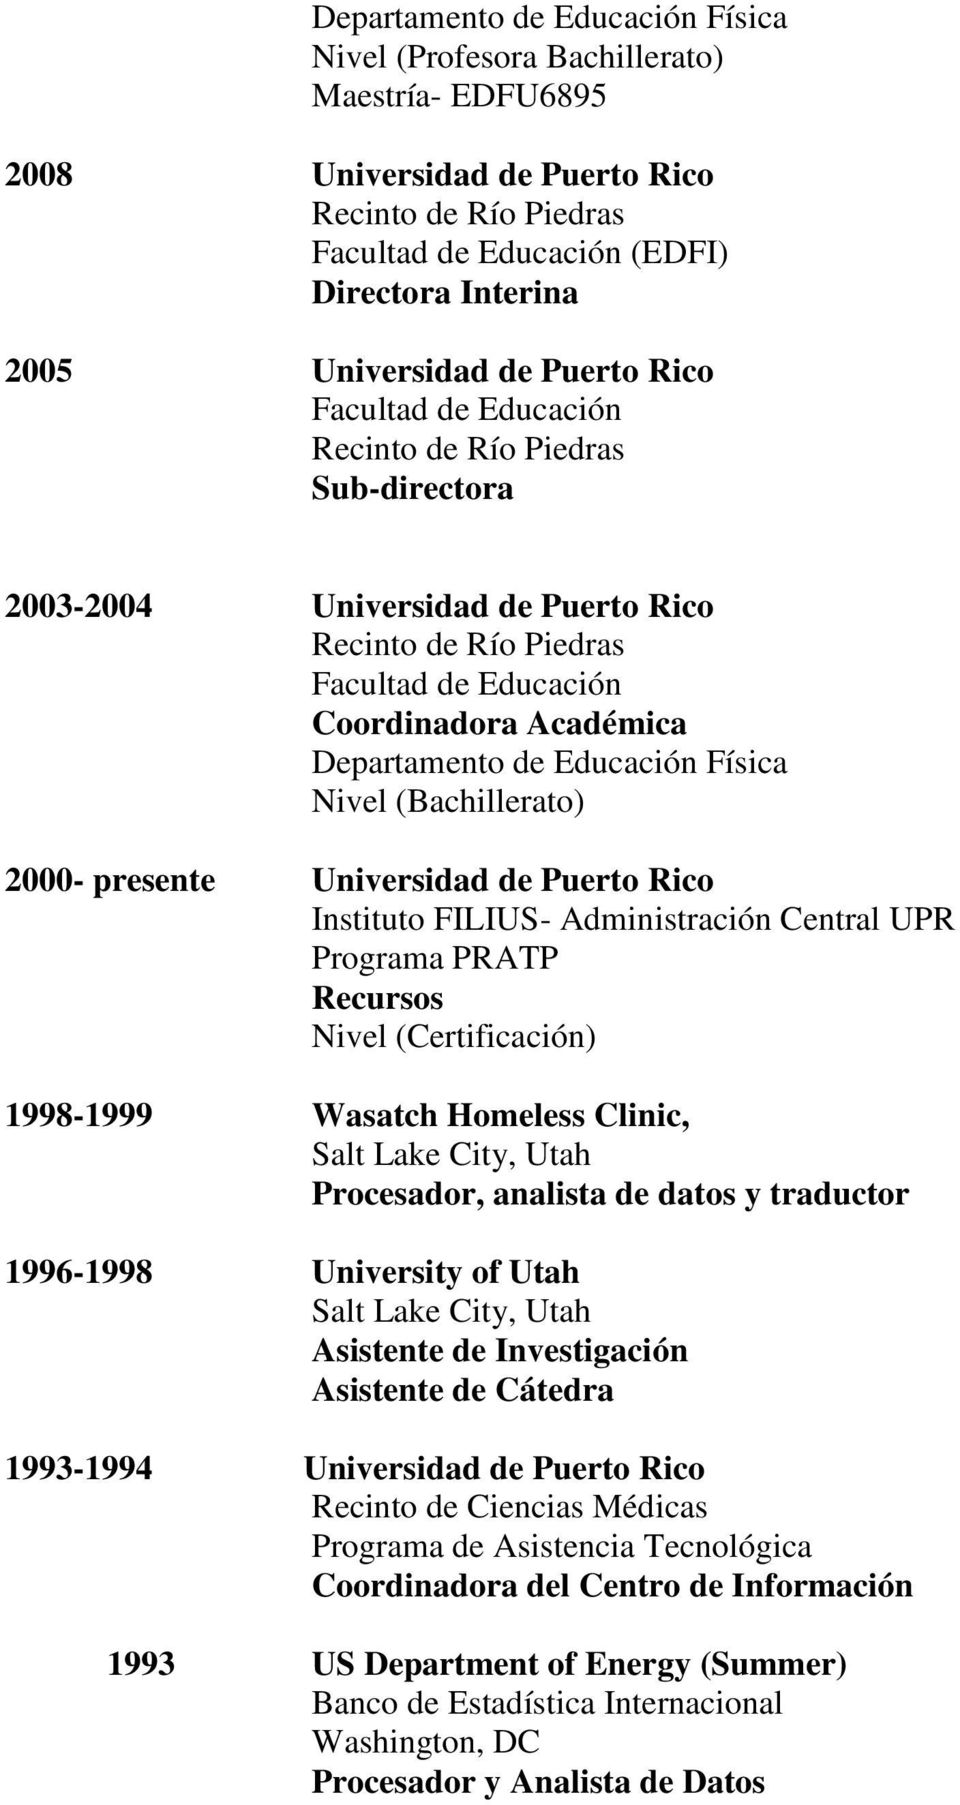 PRATP Recursos Nivel (Certificación) 1998-1999 Wasatch Homeless Clinic, Salt Lake City, Utah Procesador, analista de datos y traductor 1996-1998 University of Utah Salt Lake City, Utah Asistente de